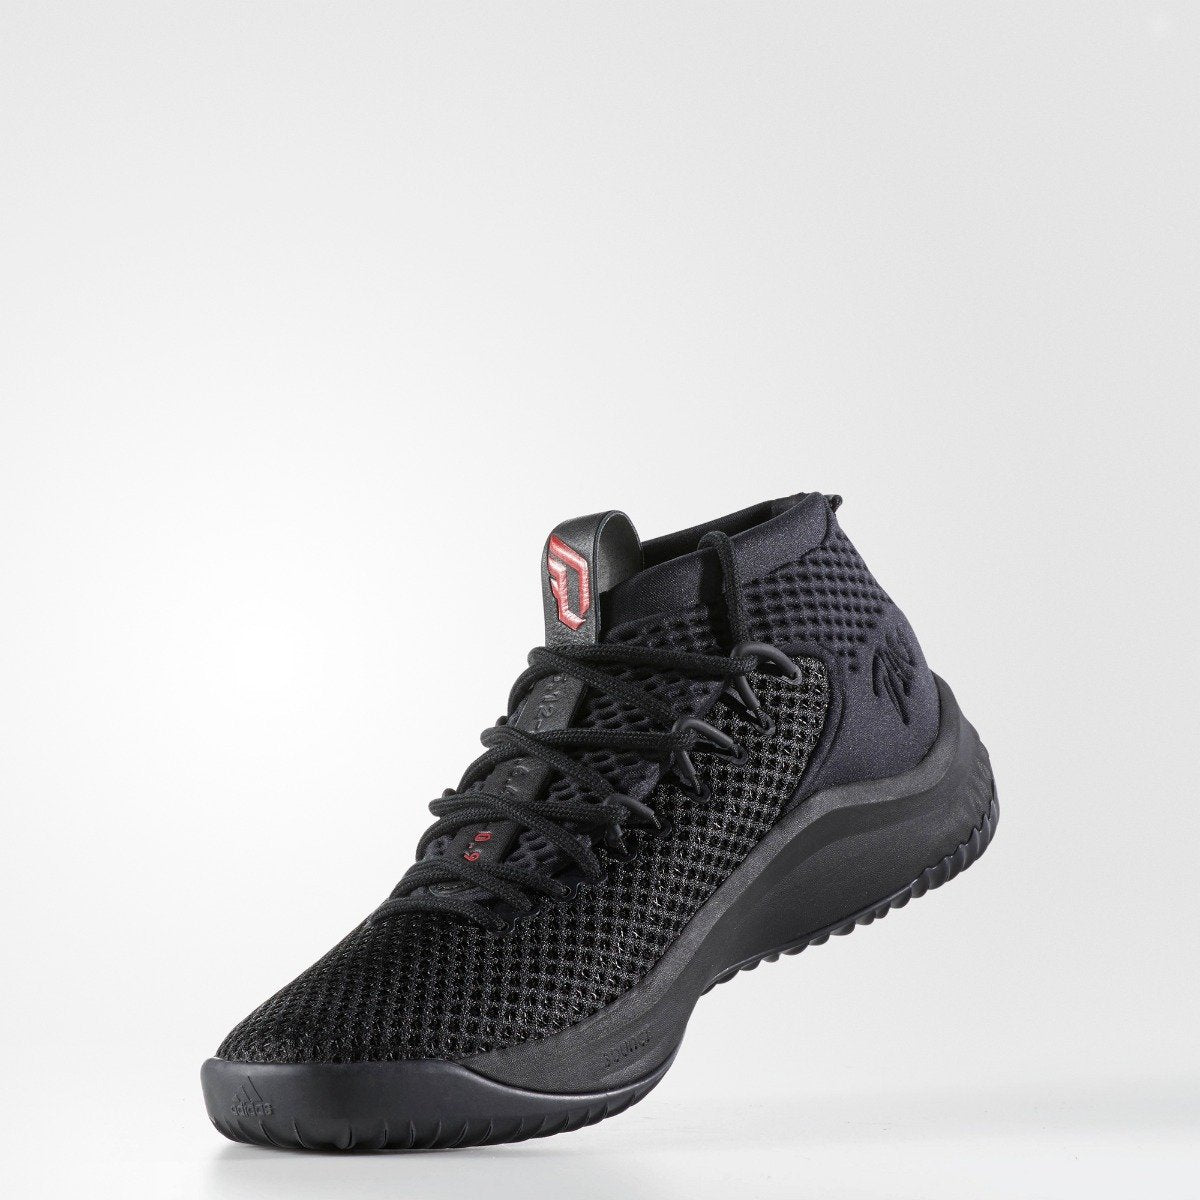 timeless design 852fb b8d15 Mens adidas Dame 4 Basketball Shoes Core Black with Scarlet. 1